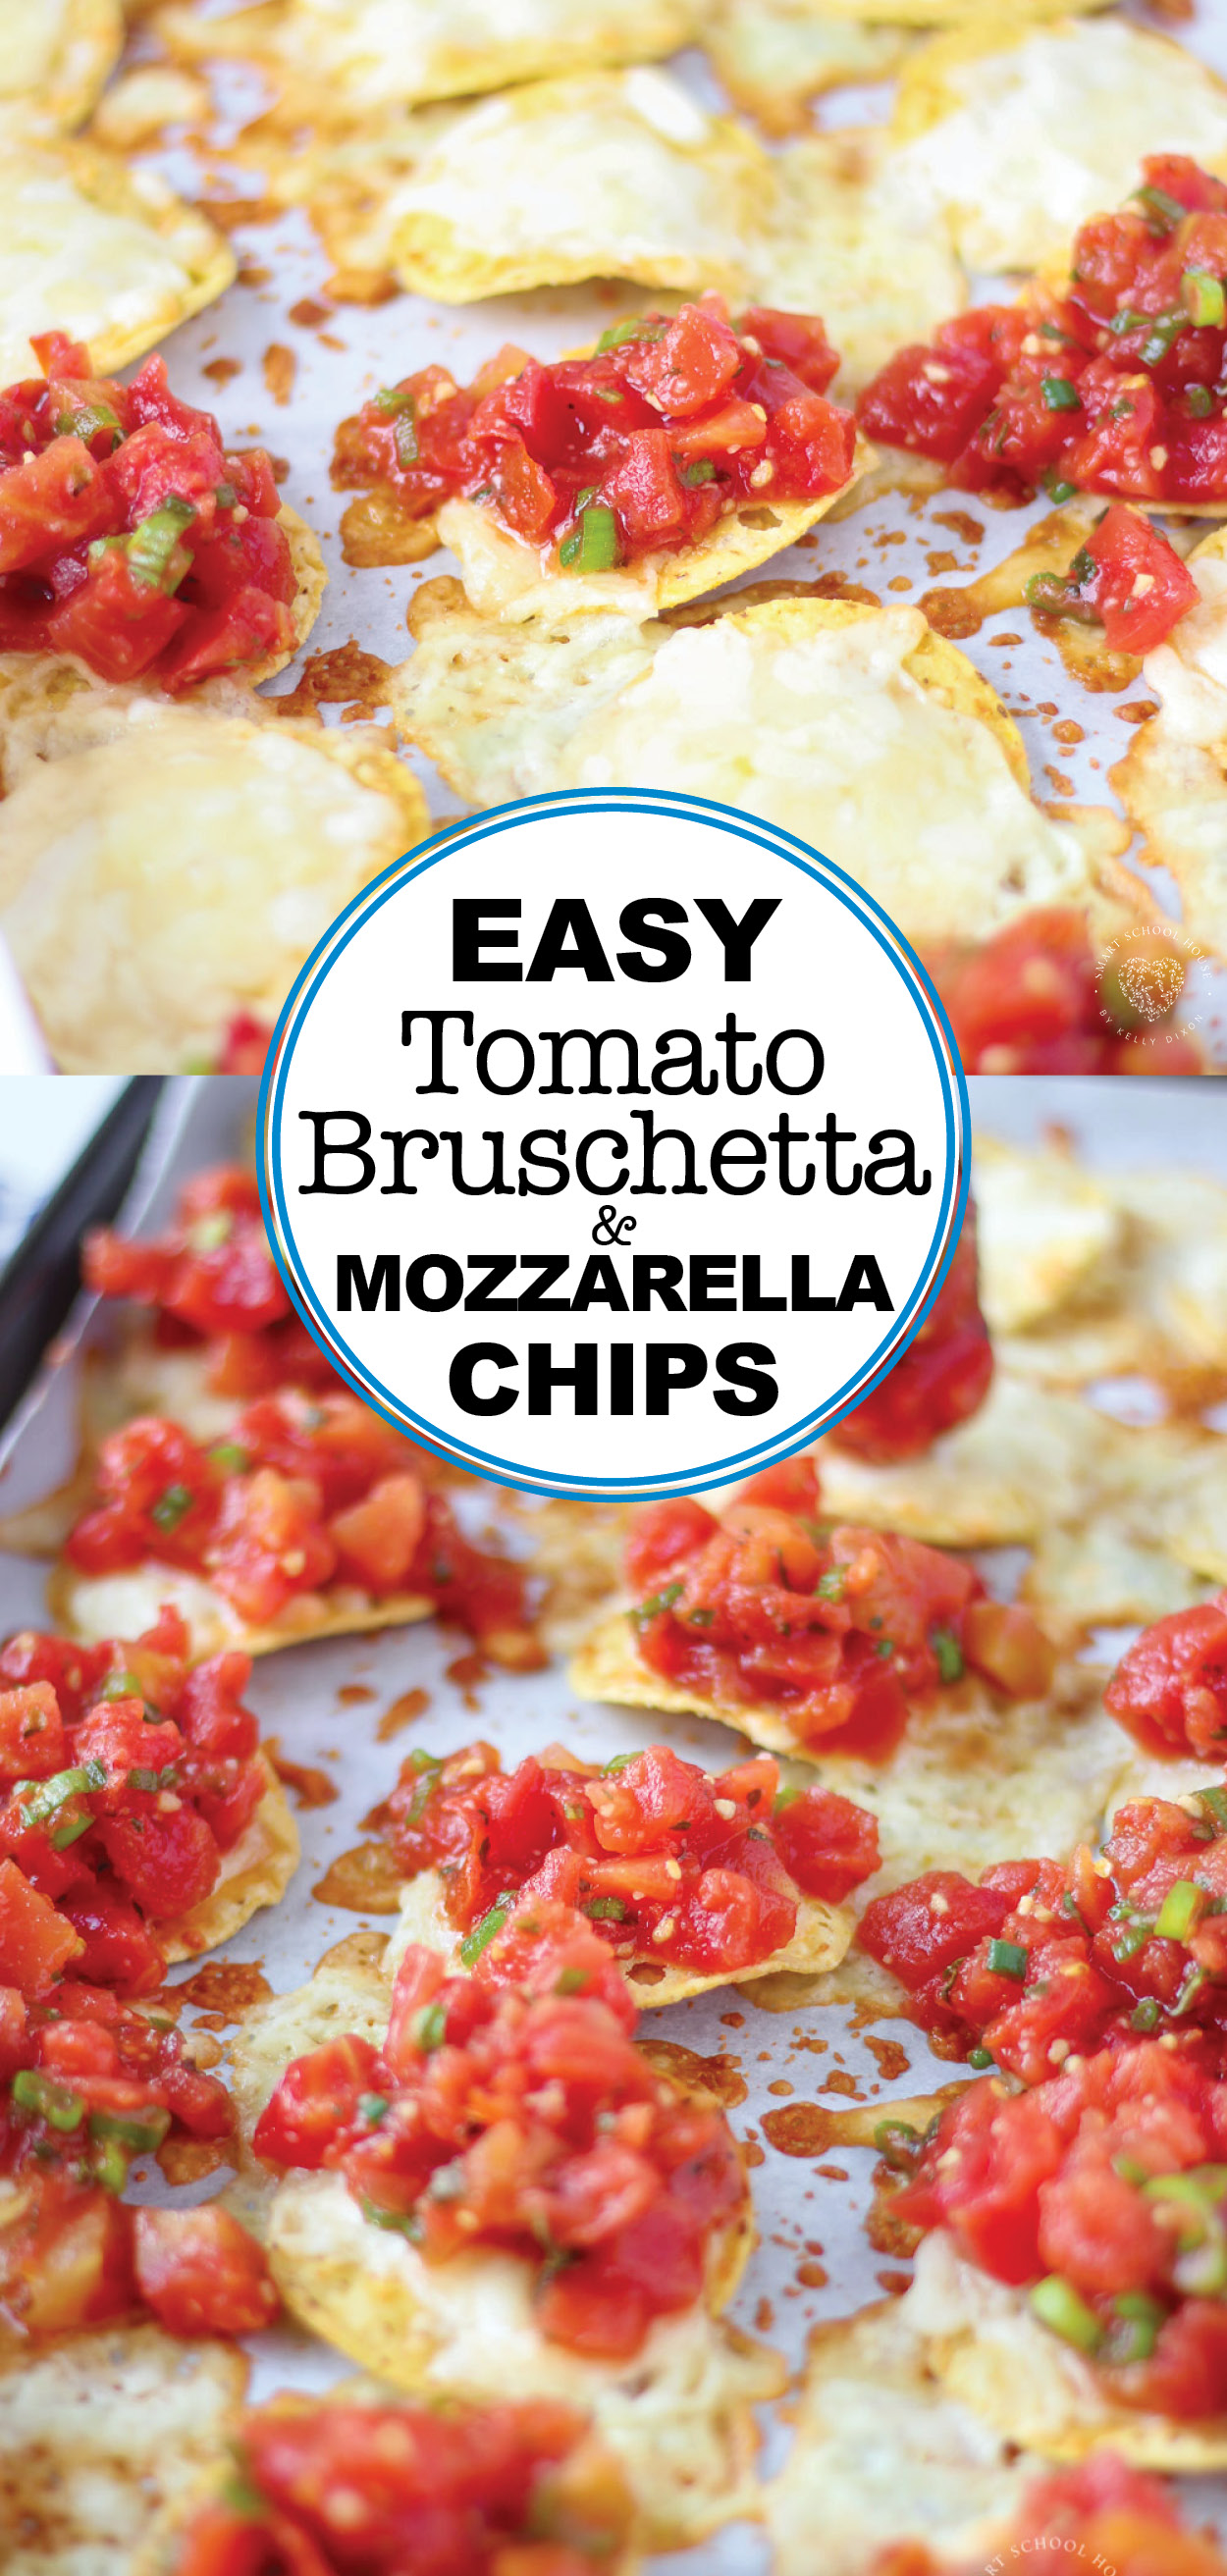 Easy tomato Bruschetta and Mozzarella Chips are always a crowd favorite over the holidays, at parties or even as a quick appetizer before dinner at home.